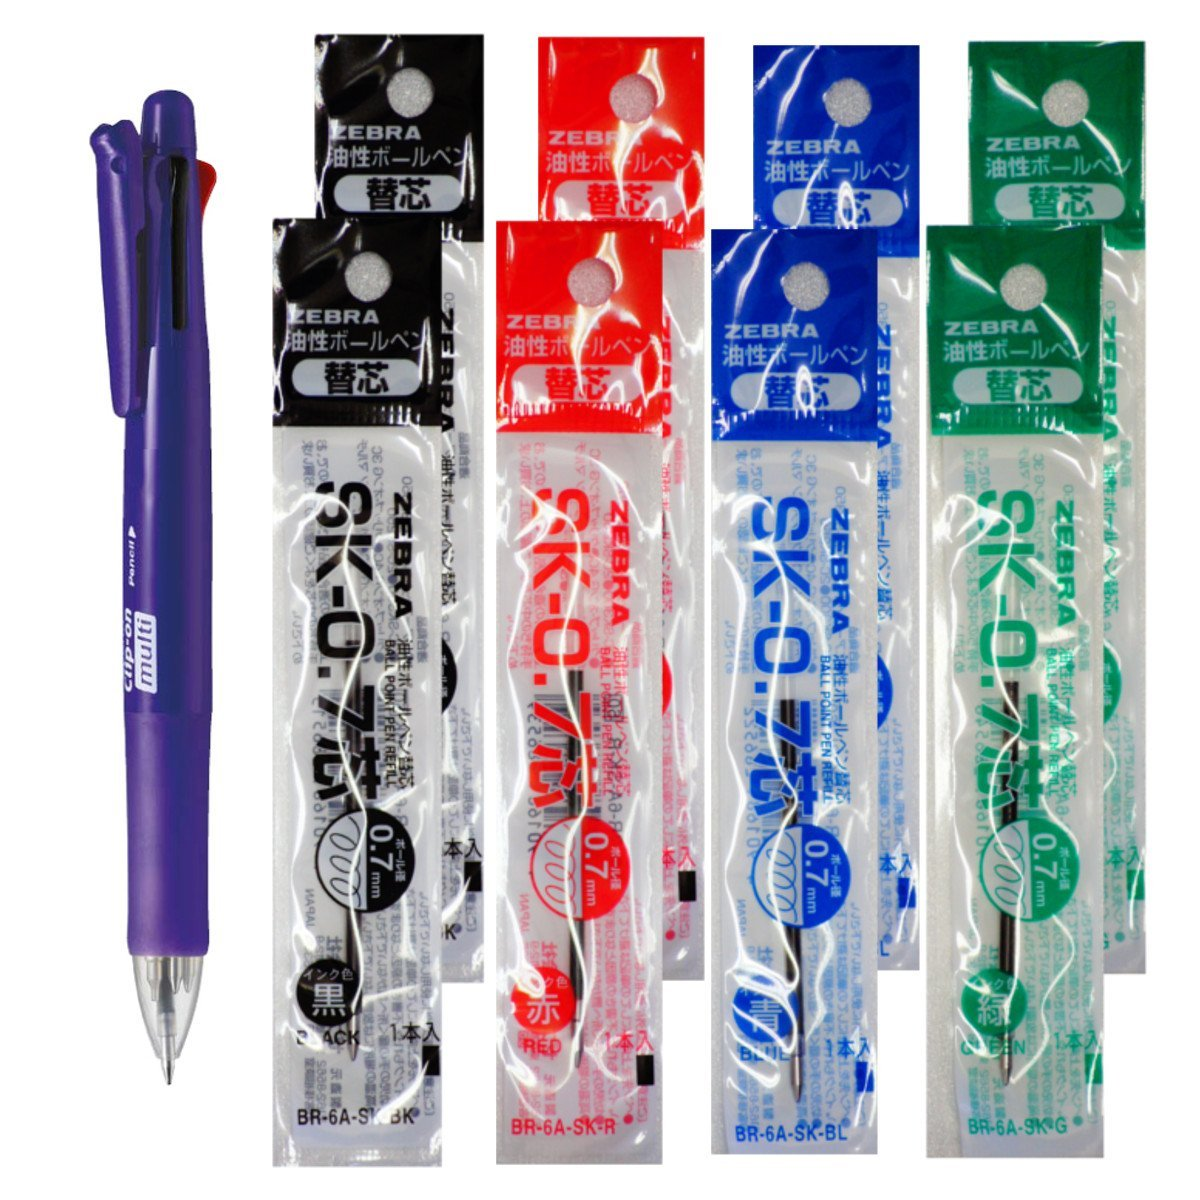 Zebra B4SA1 Violet Pen + SK-0.7 Black, Blue, Red and Green 0.7mm Refills (8pcs) - Assorted [B4SA1_8-SK-0.7]